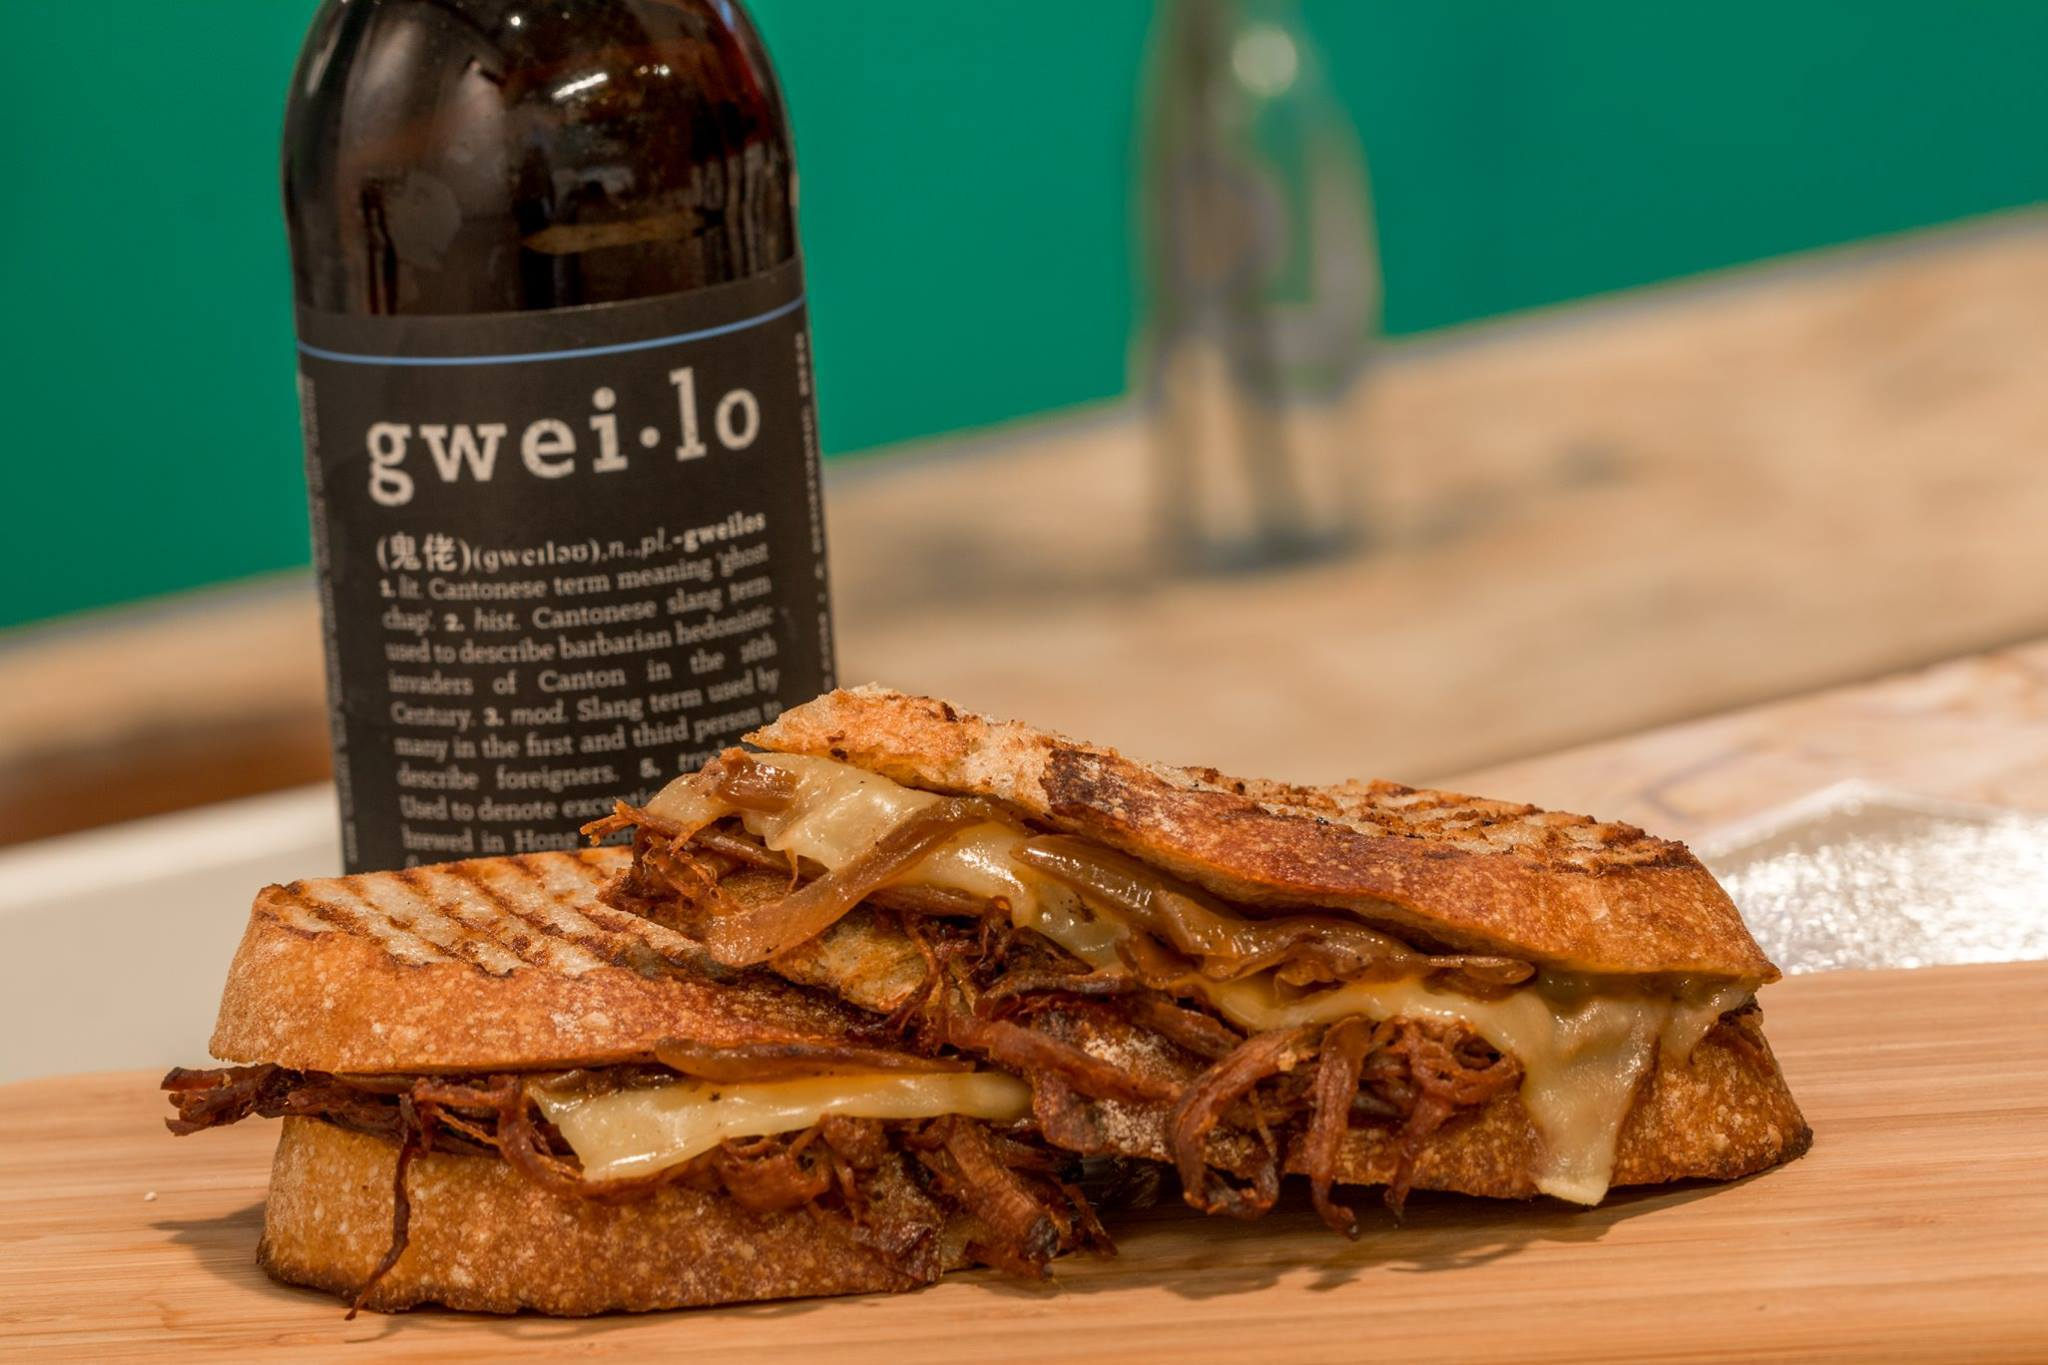 Knead's beef brisket with caramelised onions sandwich